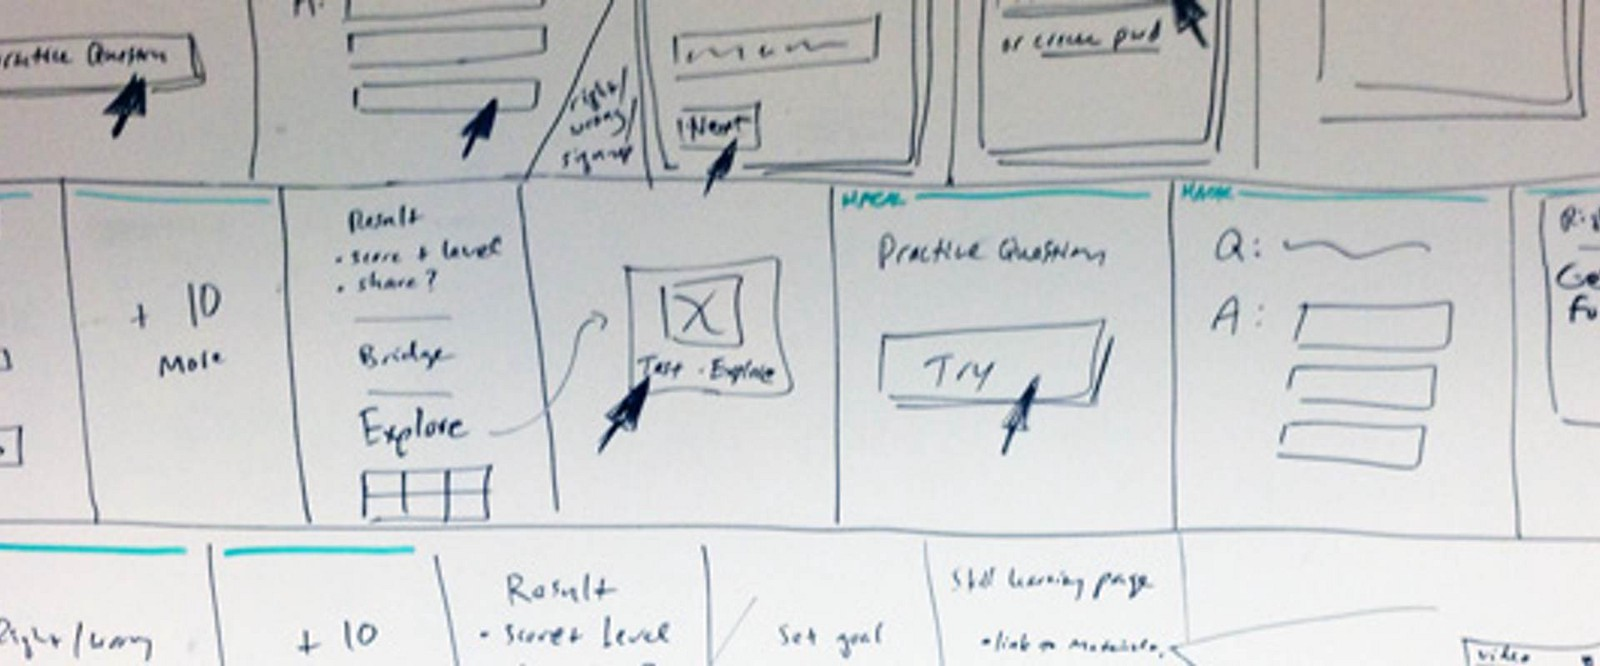 The product design sprint: decide (day 3)